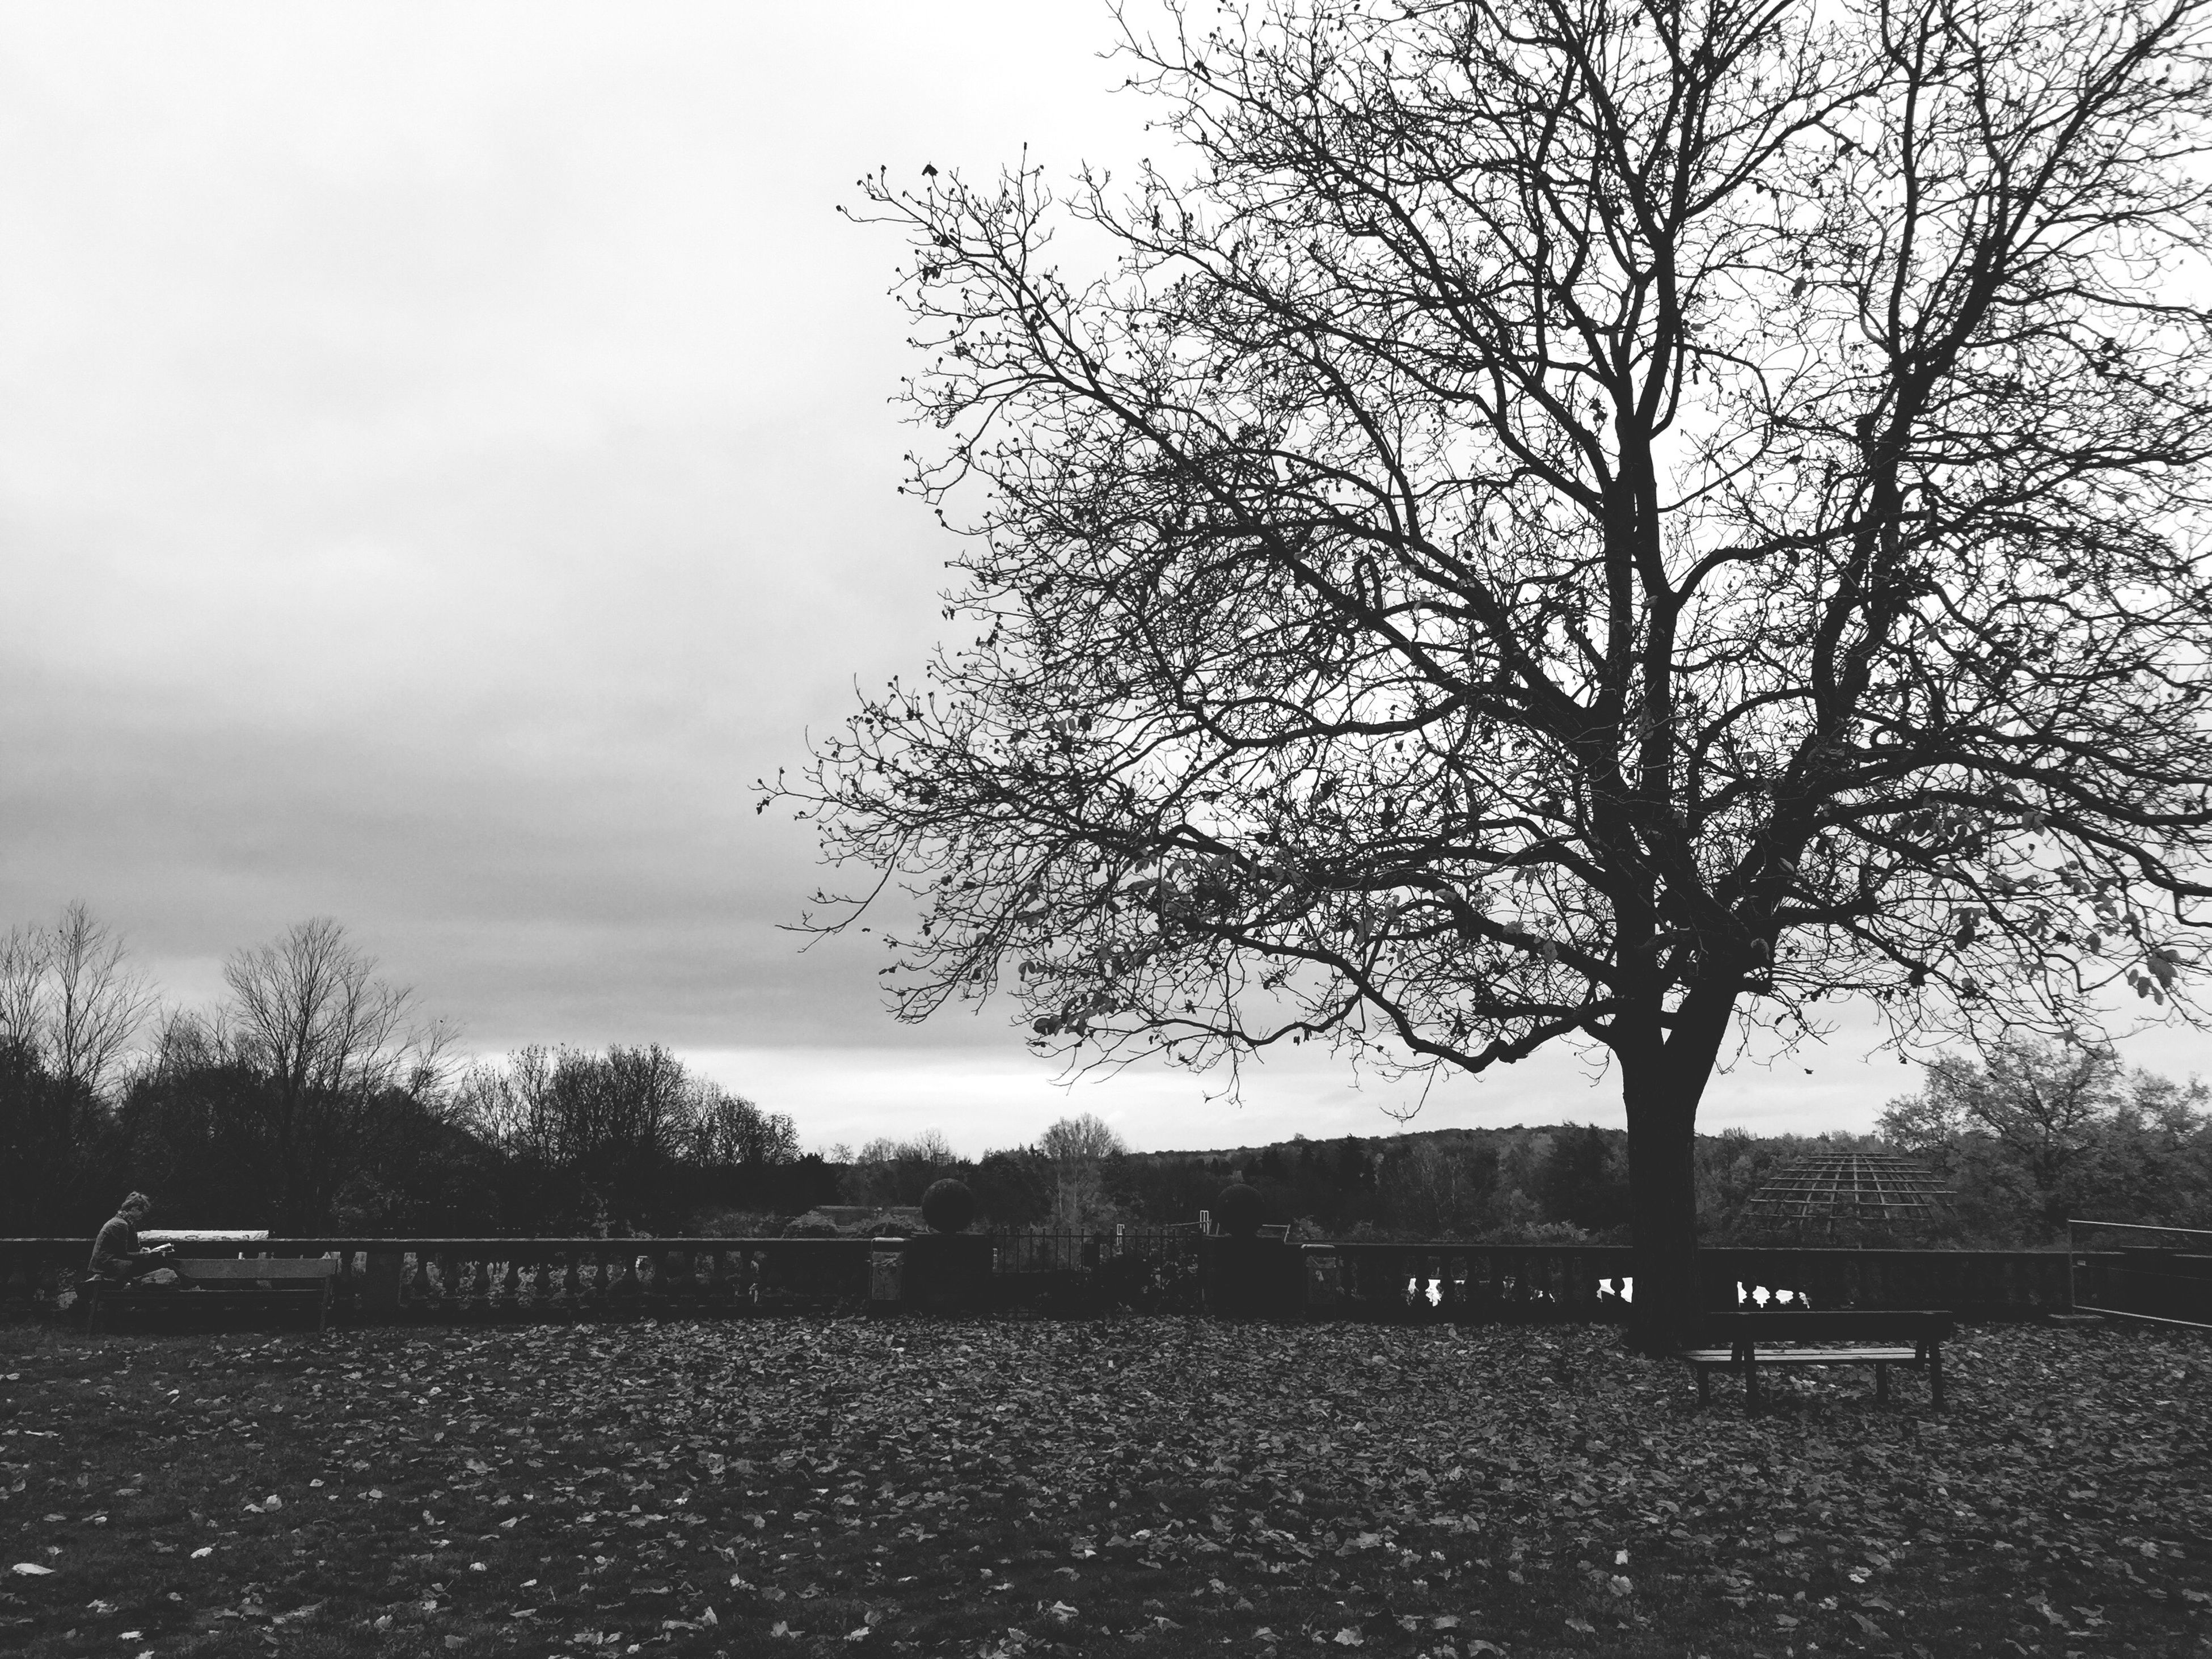 tree, bare tree, tranquility, tranquil scene, sky, branch, landscape, field, nature, scenics, beauty in nature, growth, non-urban scene, outdoors, day, no people, tree trunk, remote, cloud - sky, single tree